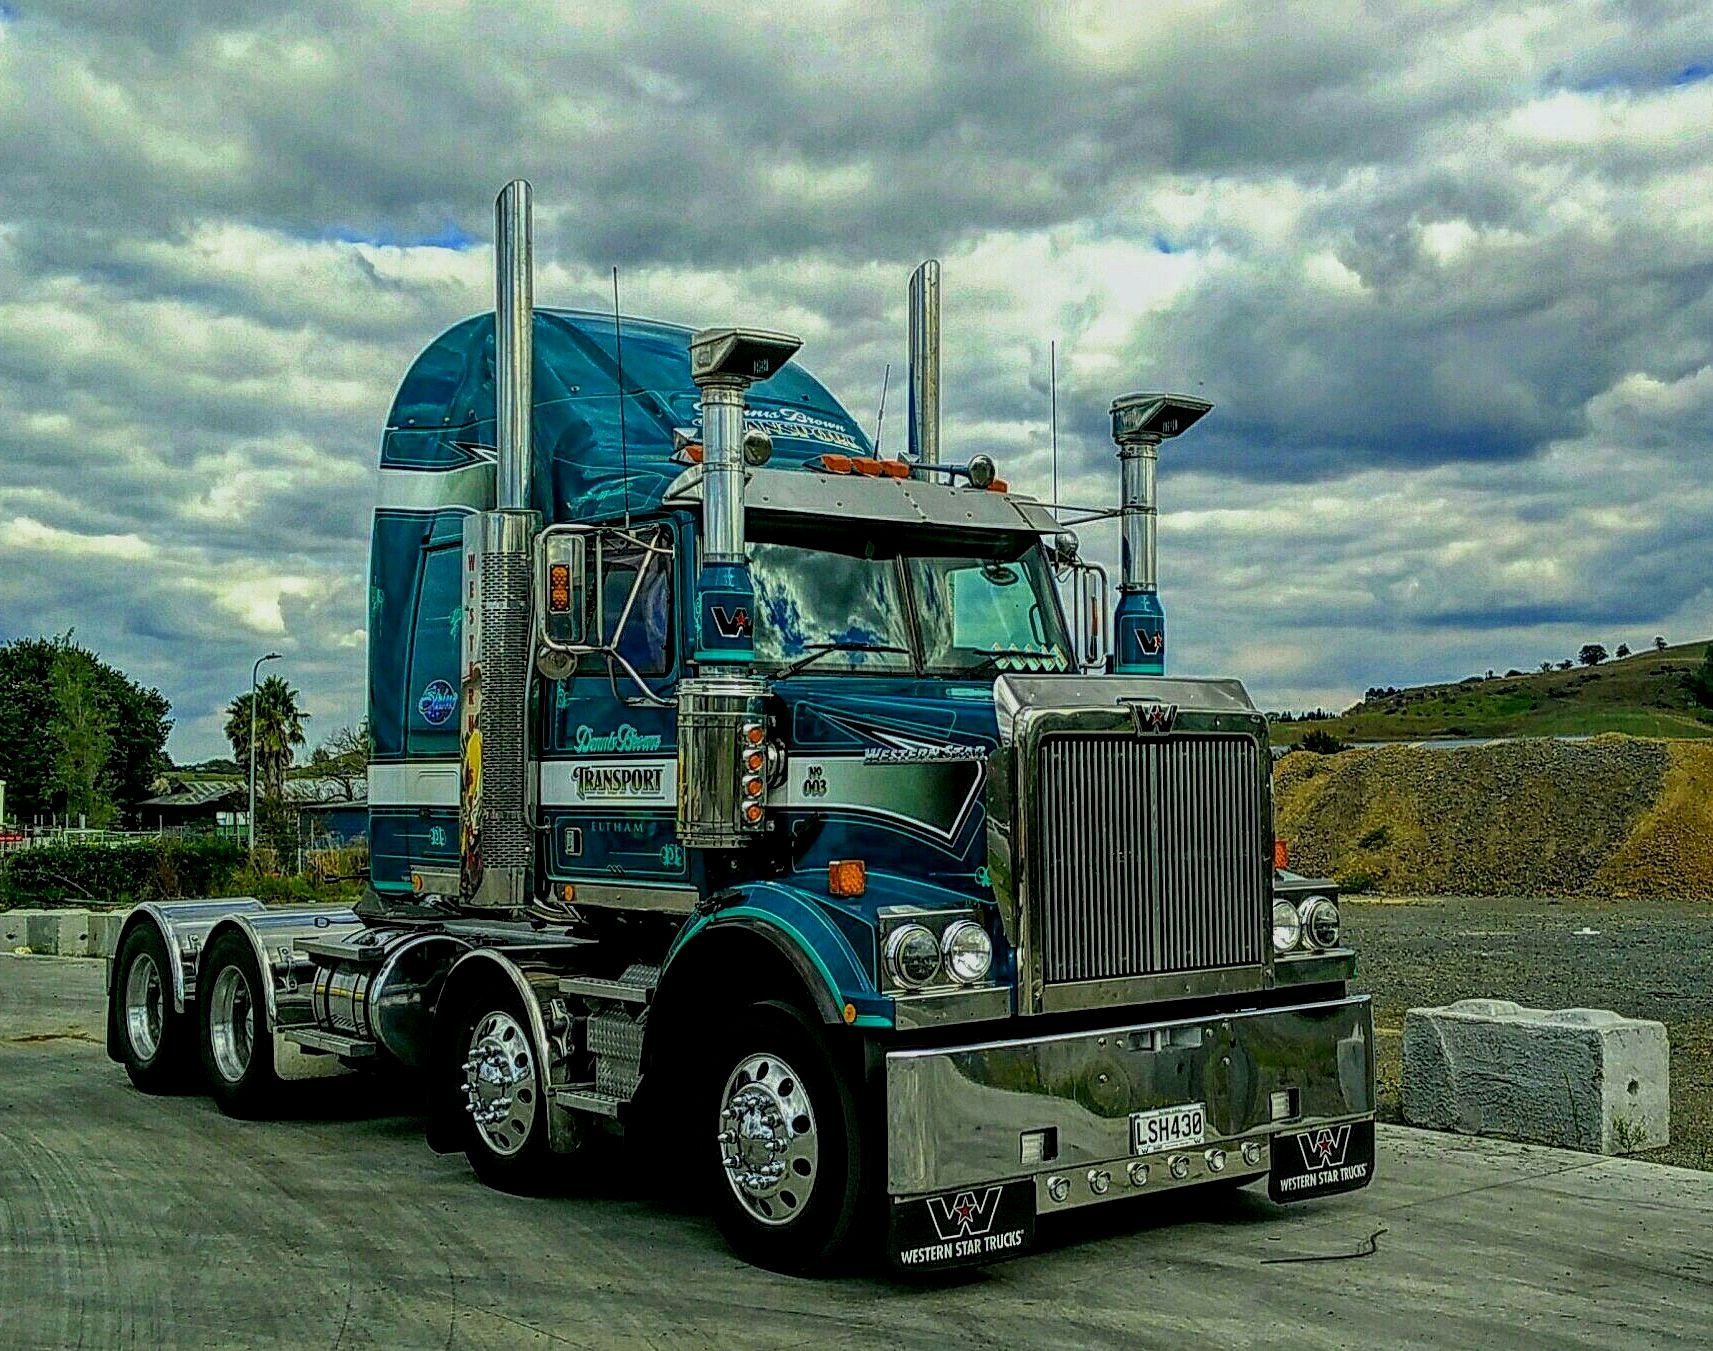 Western Star Twin Steer Prime Mover N Z White Truck Big Rig